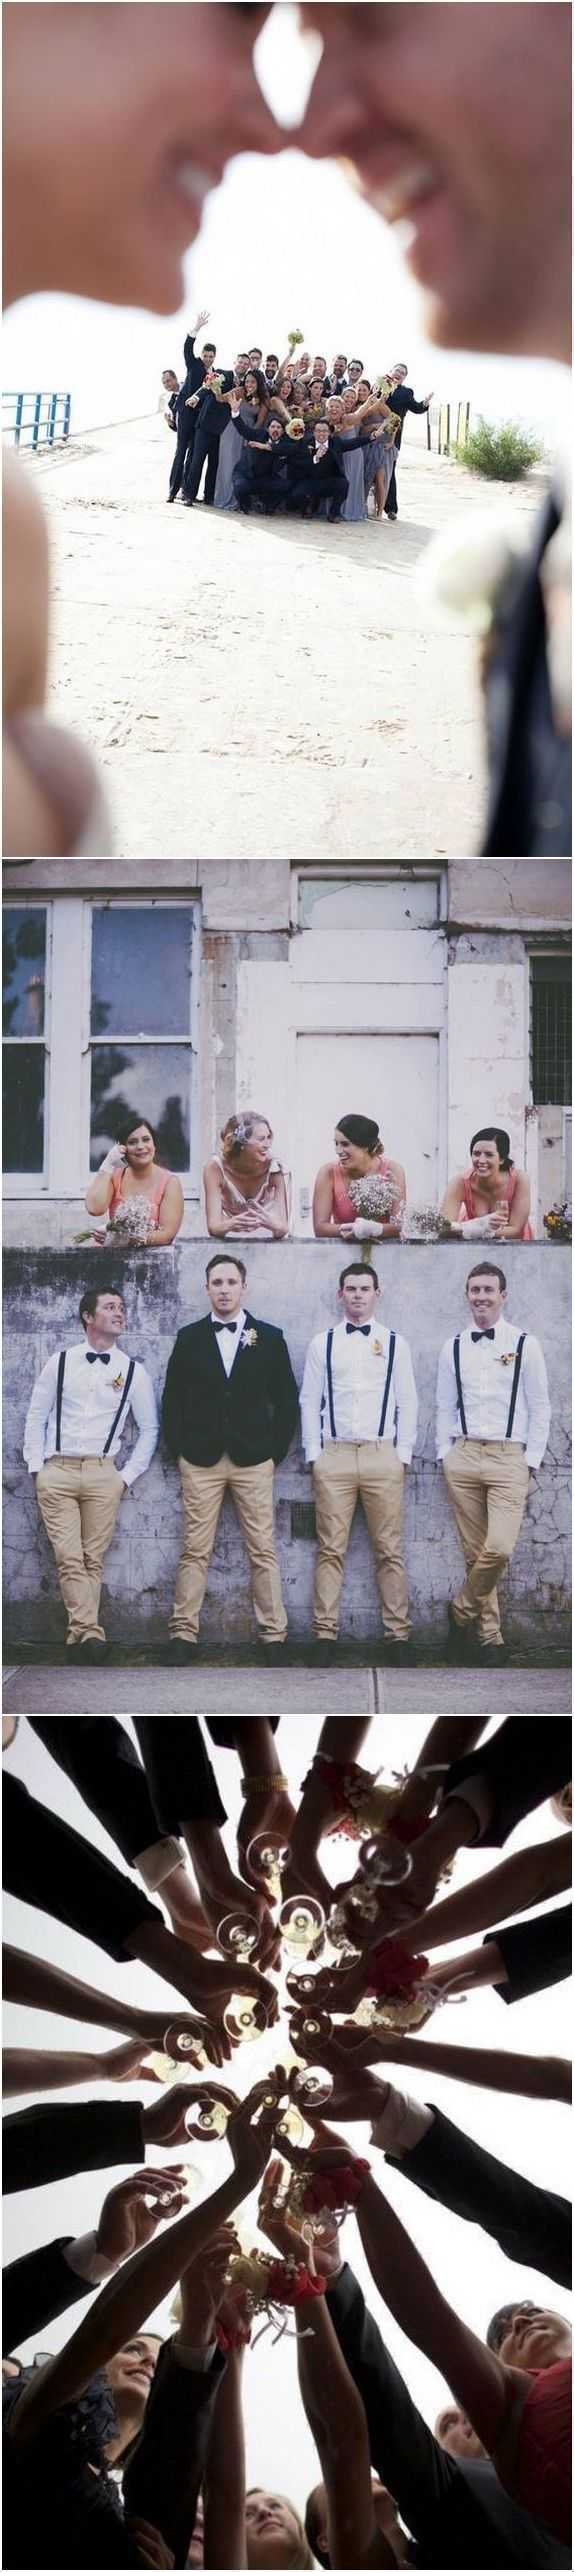 funny groomsmen wedding photo ideas / http://www.deerpearlflowers.com/fun-groomsmen-photo-ideas-and-poses/ #weddings #photos #weddingphotos #funnyweddingphotos